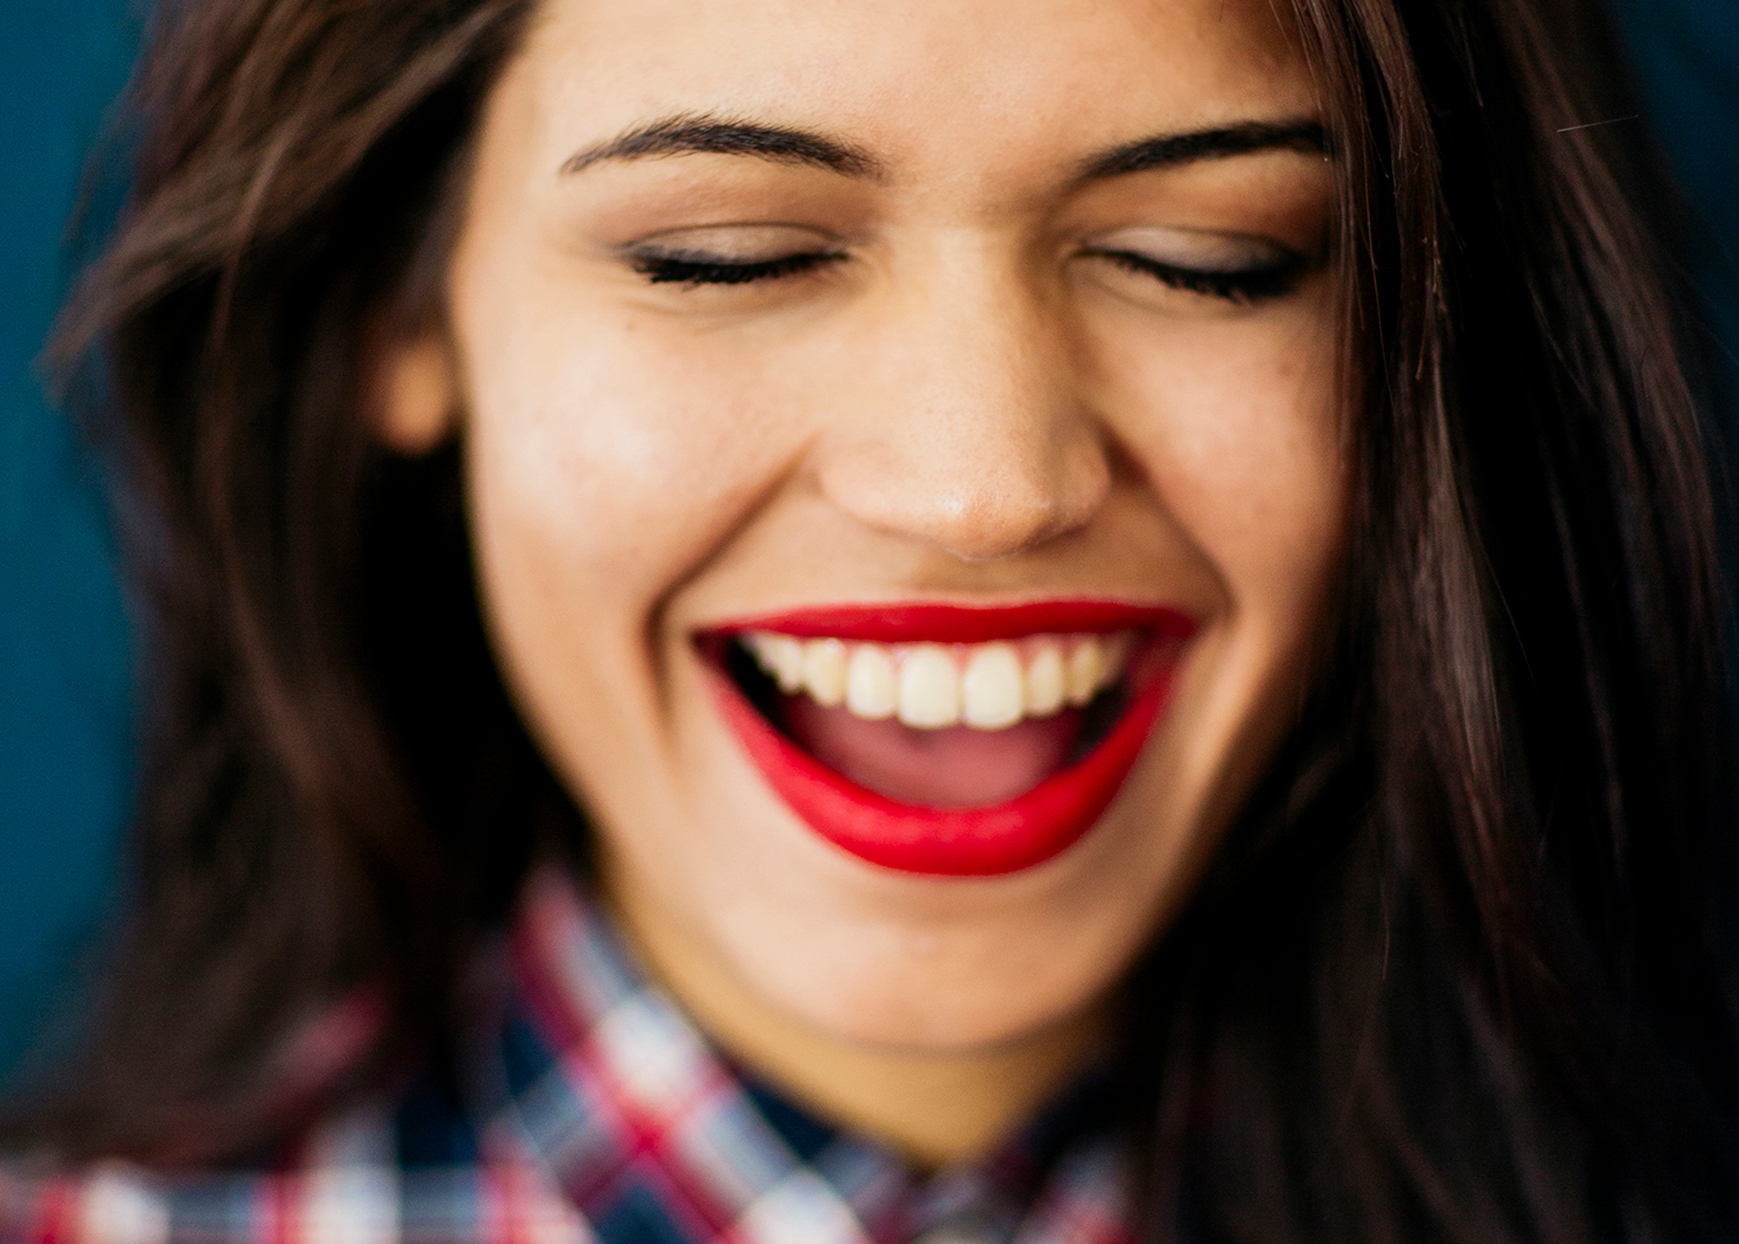 woman with bright red lipstick laughing with her eyes closed